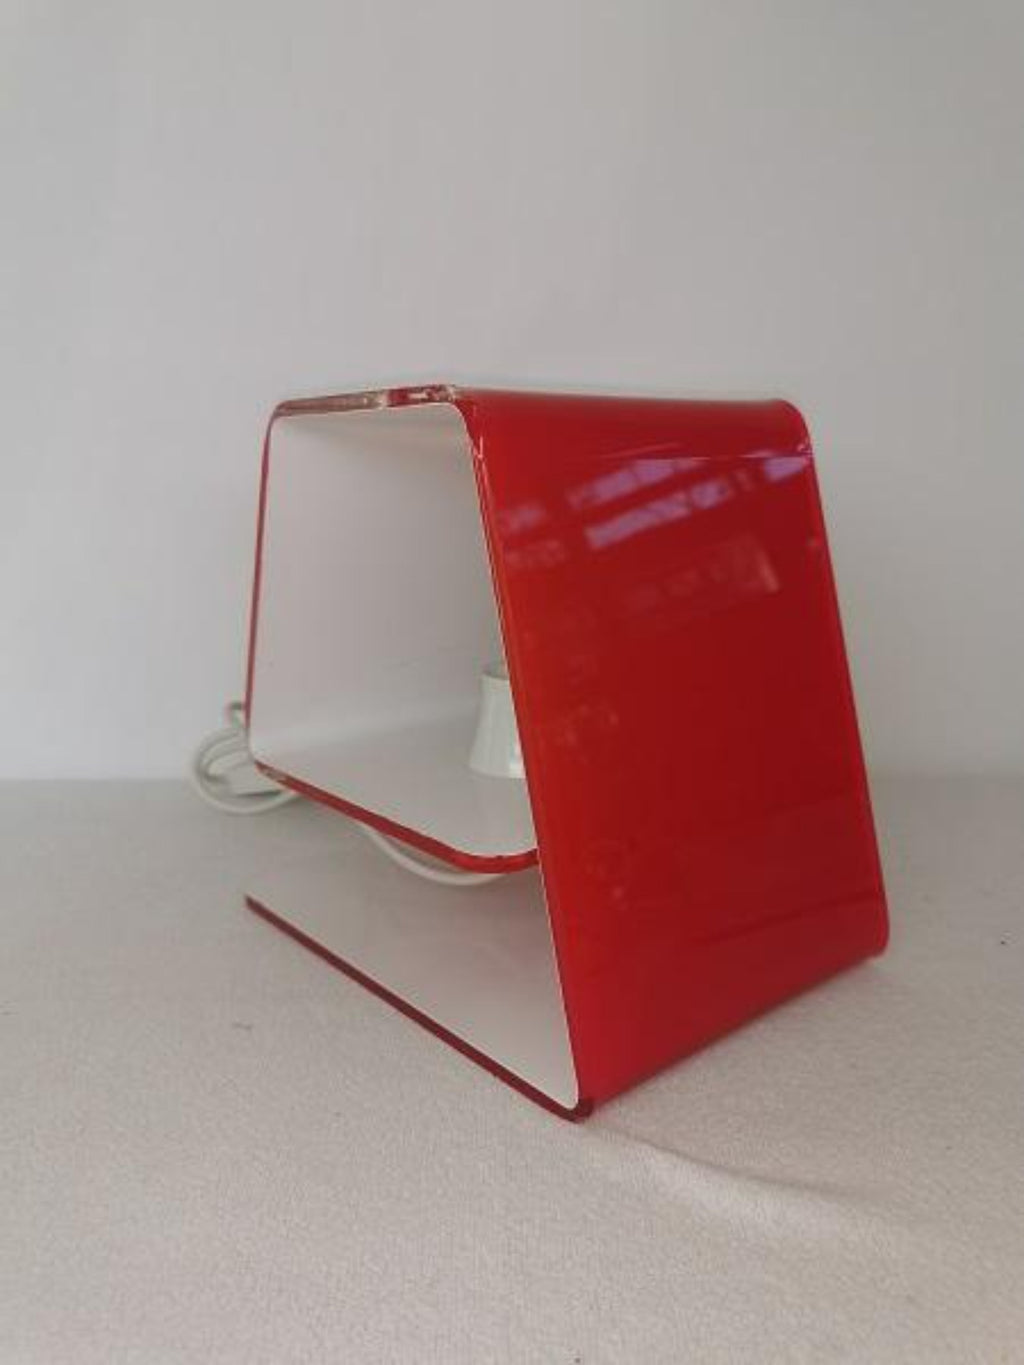 Modern Italian red design table lamp Carina - Marco Baxadonne for Calligaris luce